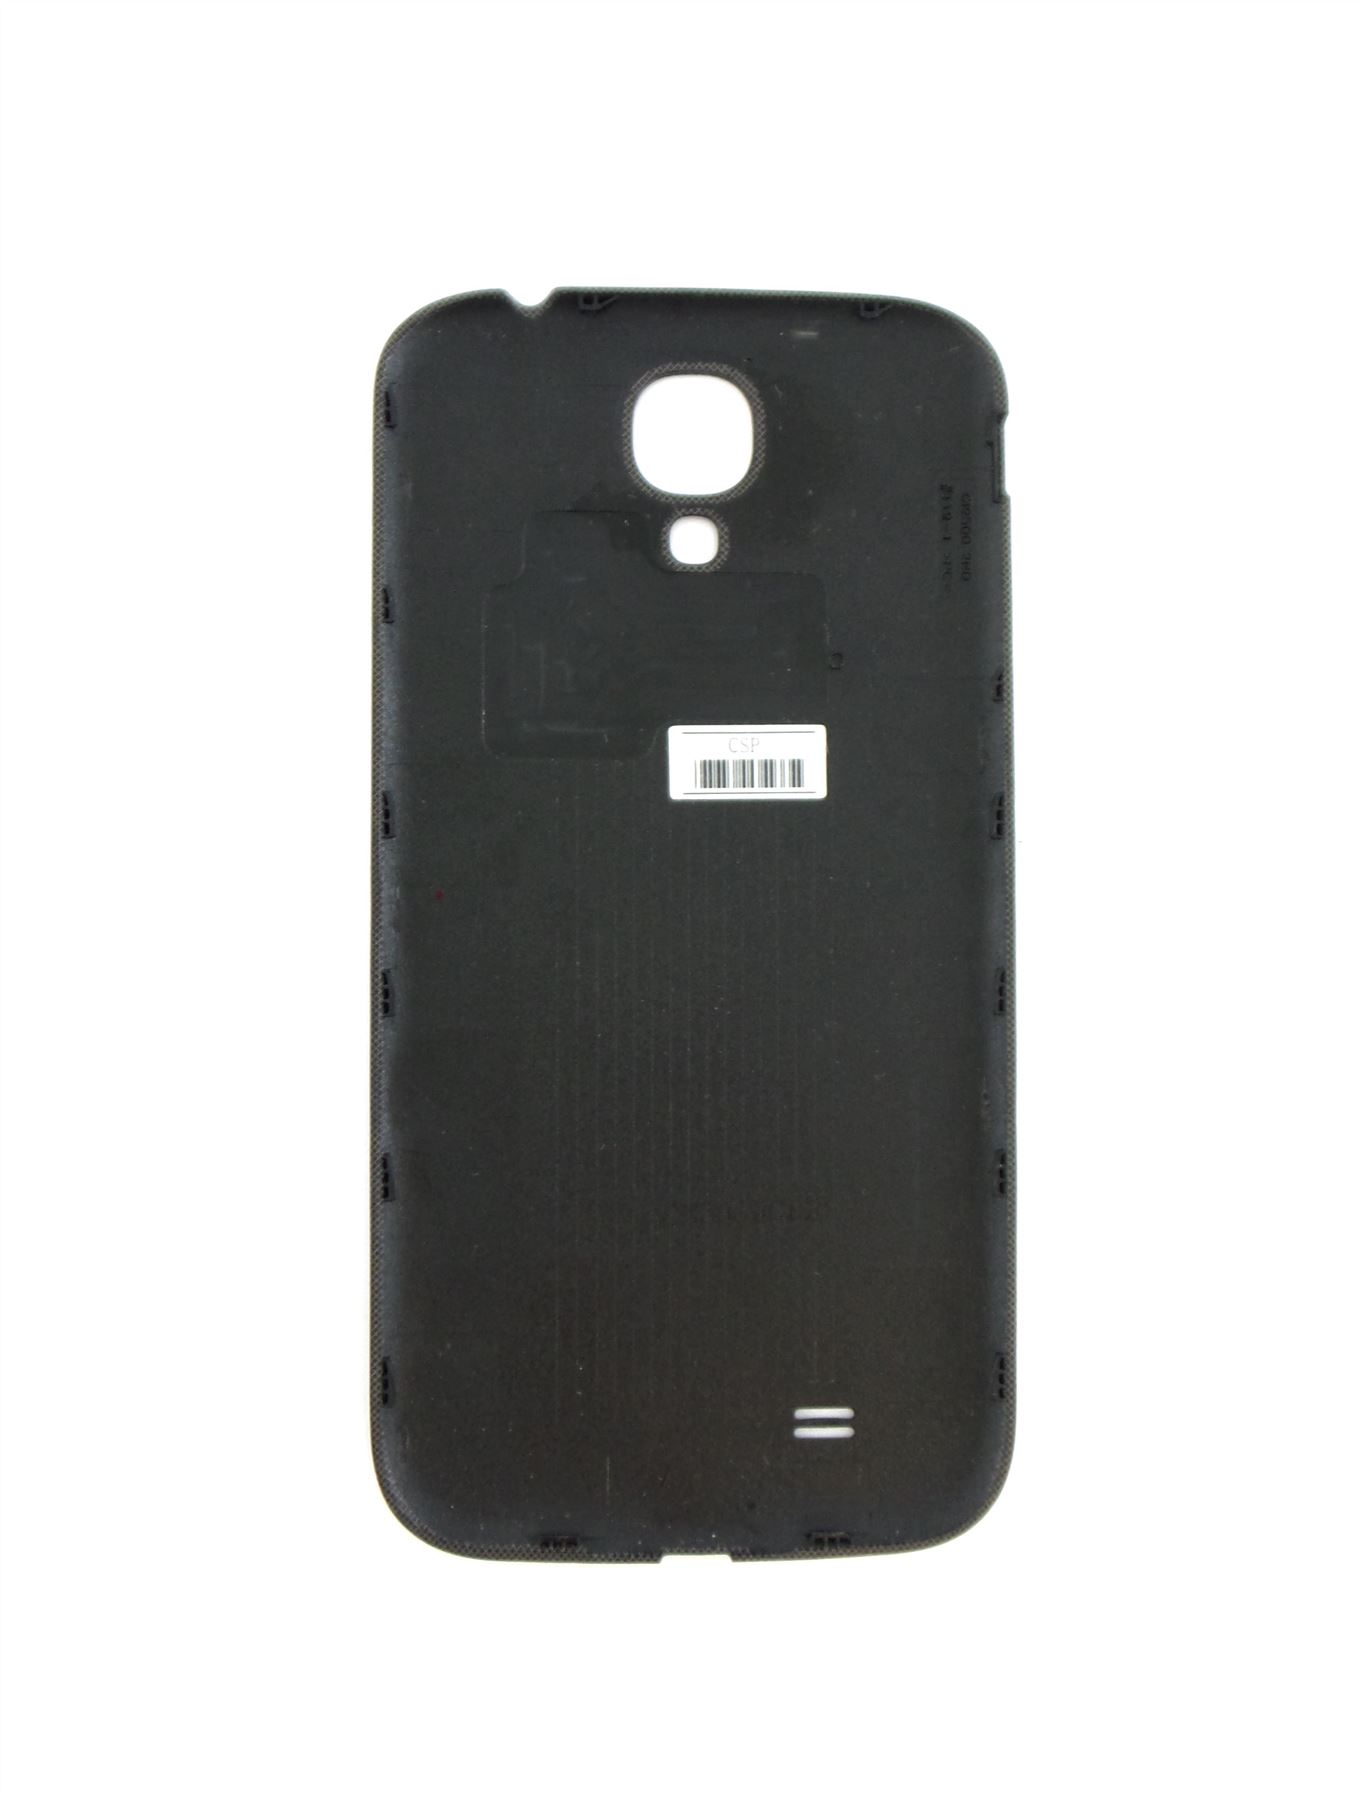 Samsung-Galaxy-S4-Authentic-Battery-Door-Cover-AT-amp-T-Verizon-T-Mobile thumbnail 23